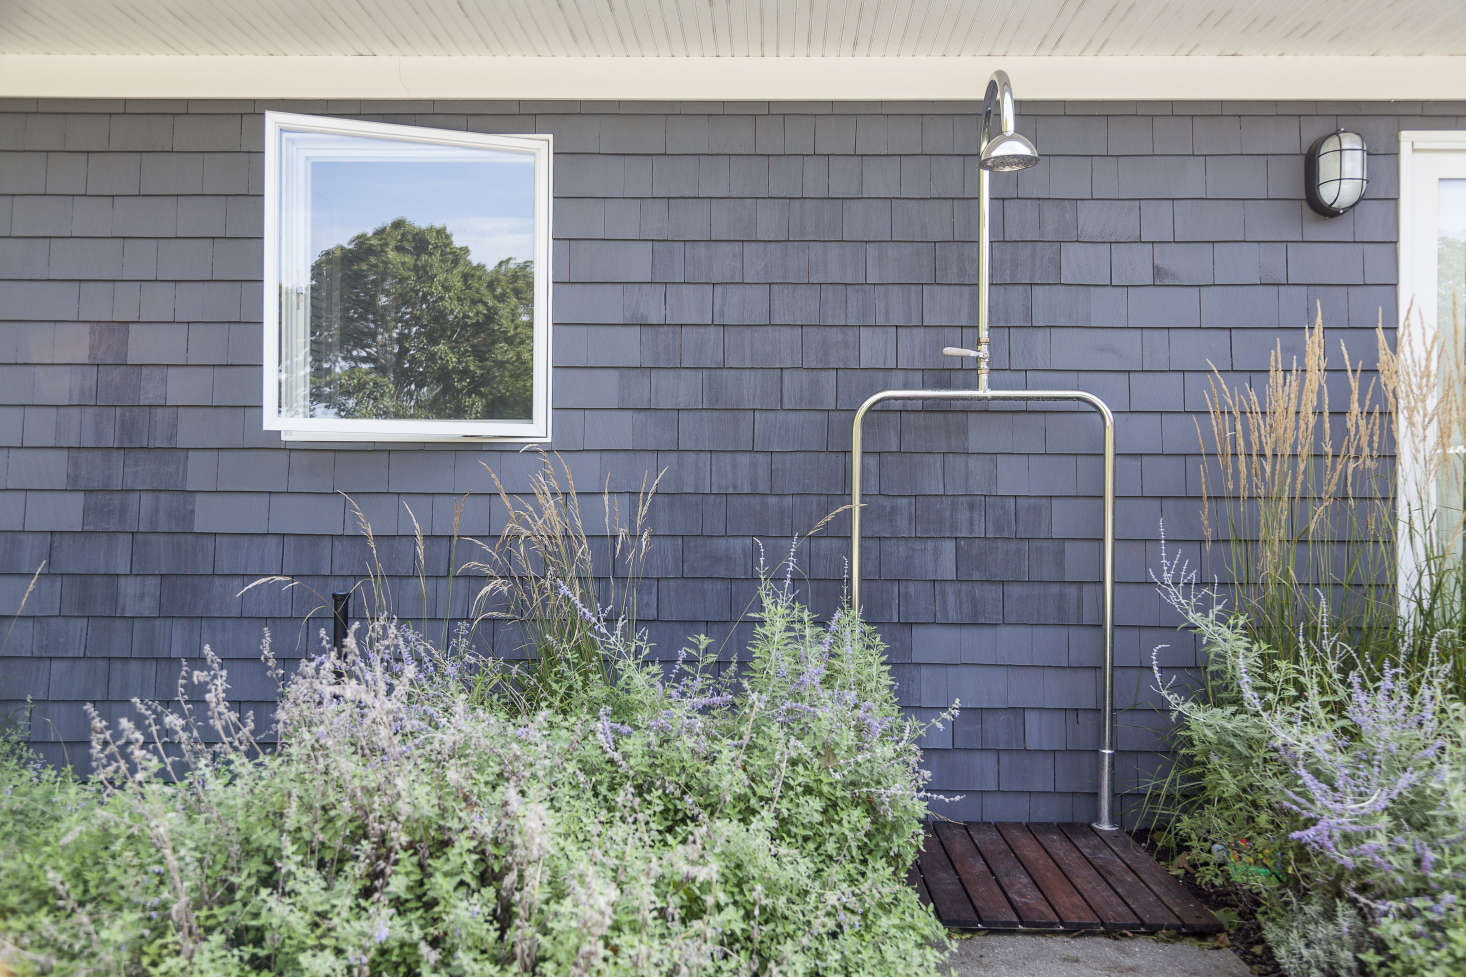 An alluring outdoor shower, partially hidden by tall grasses, is best utilized while wearing a bathing suit.